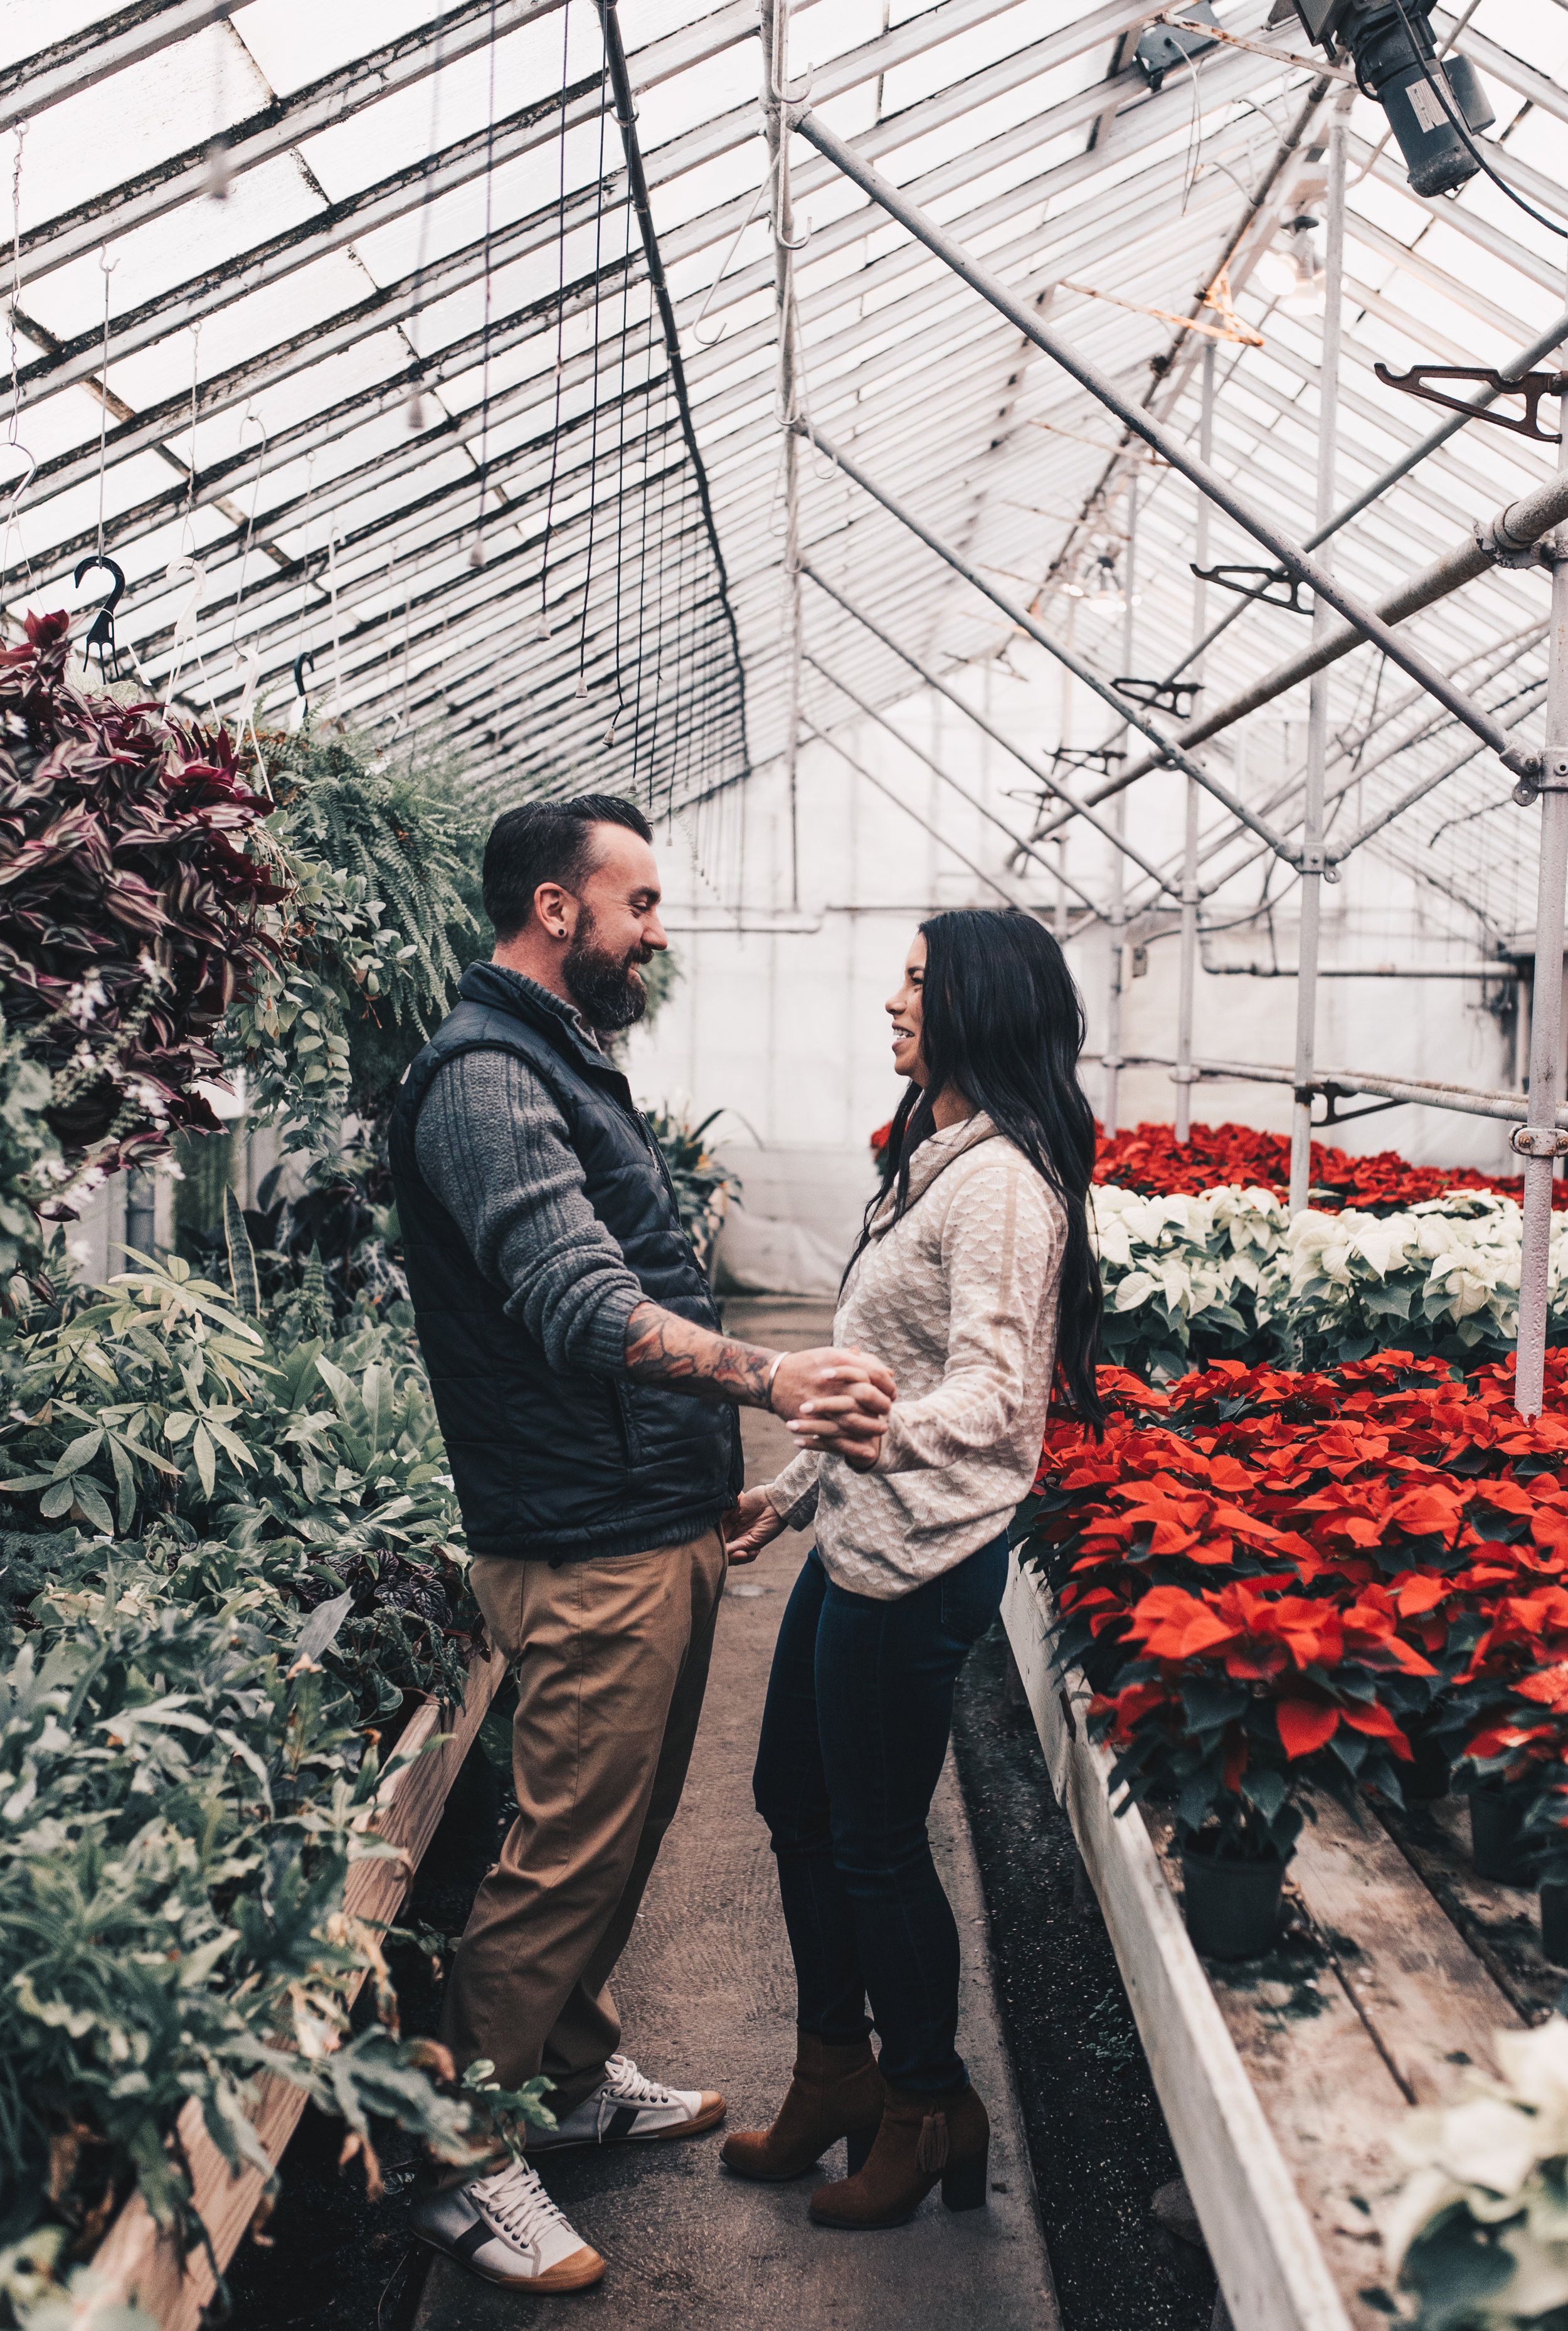 Greenhouse Couples Photography, Greenhouse Engagement Photography, Illinois Couples Photographer